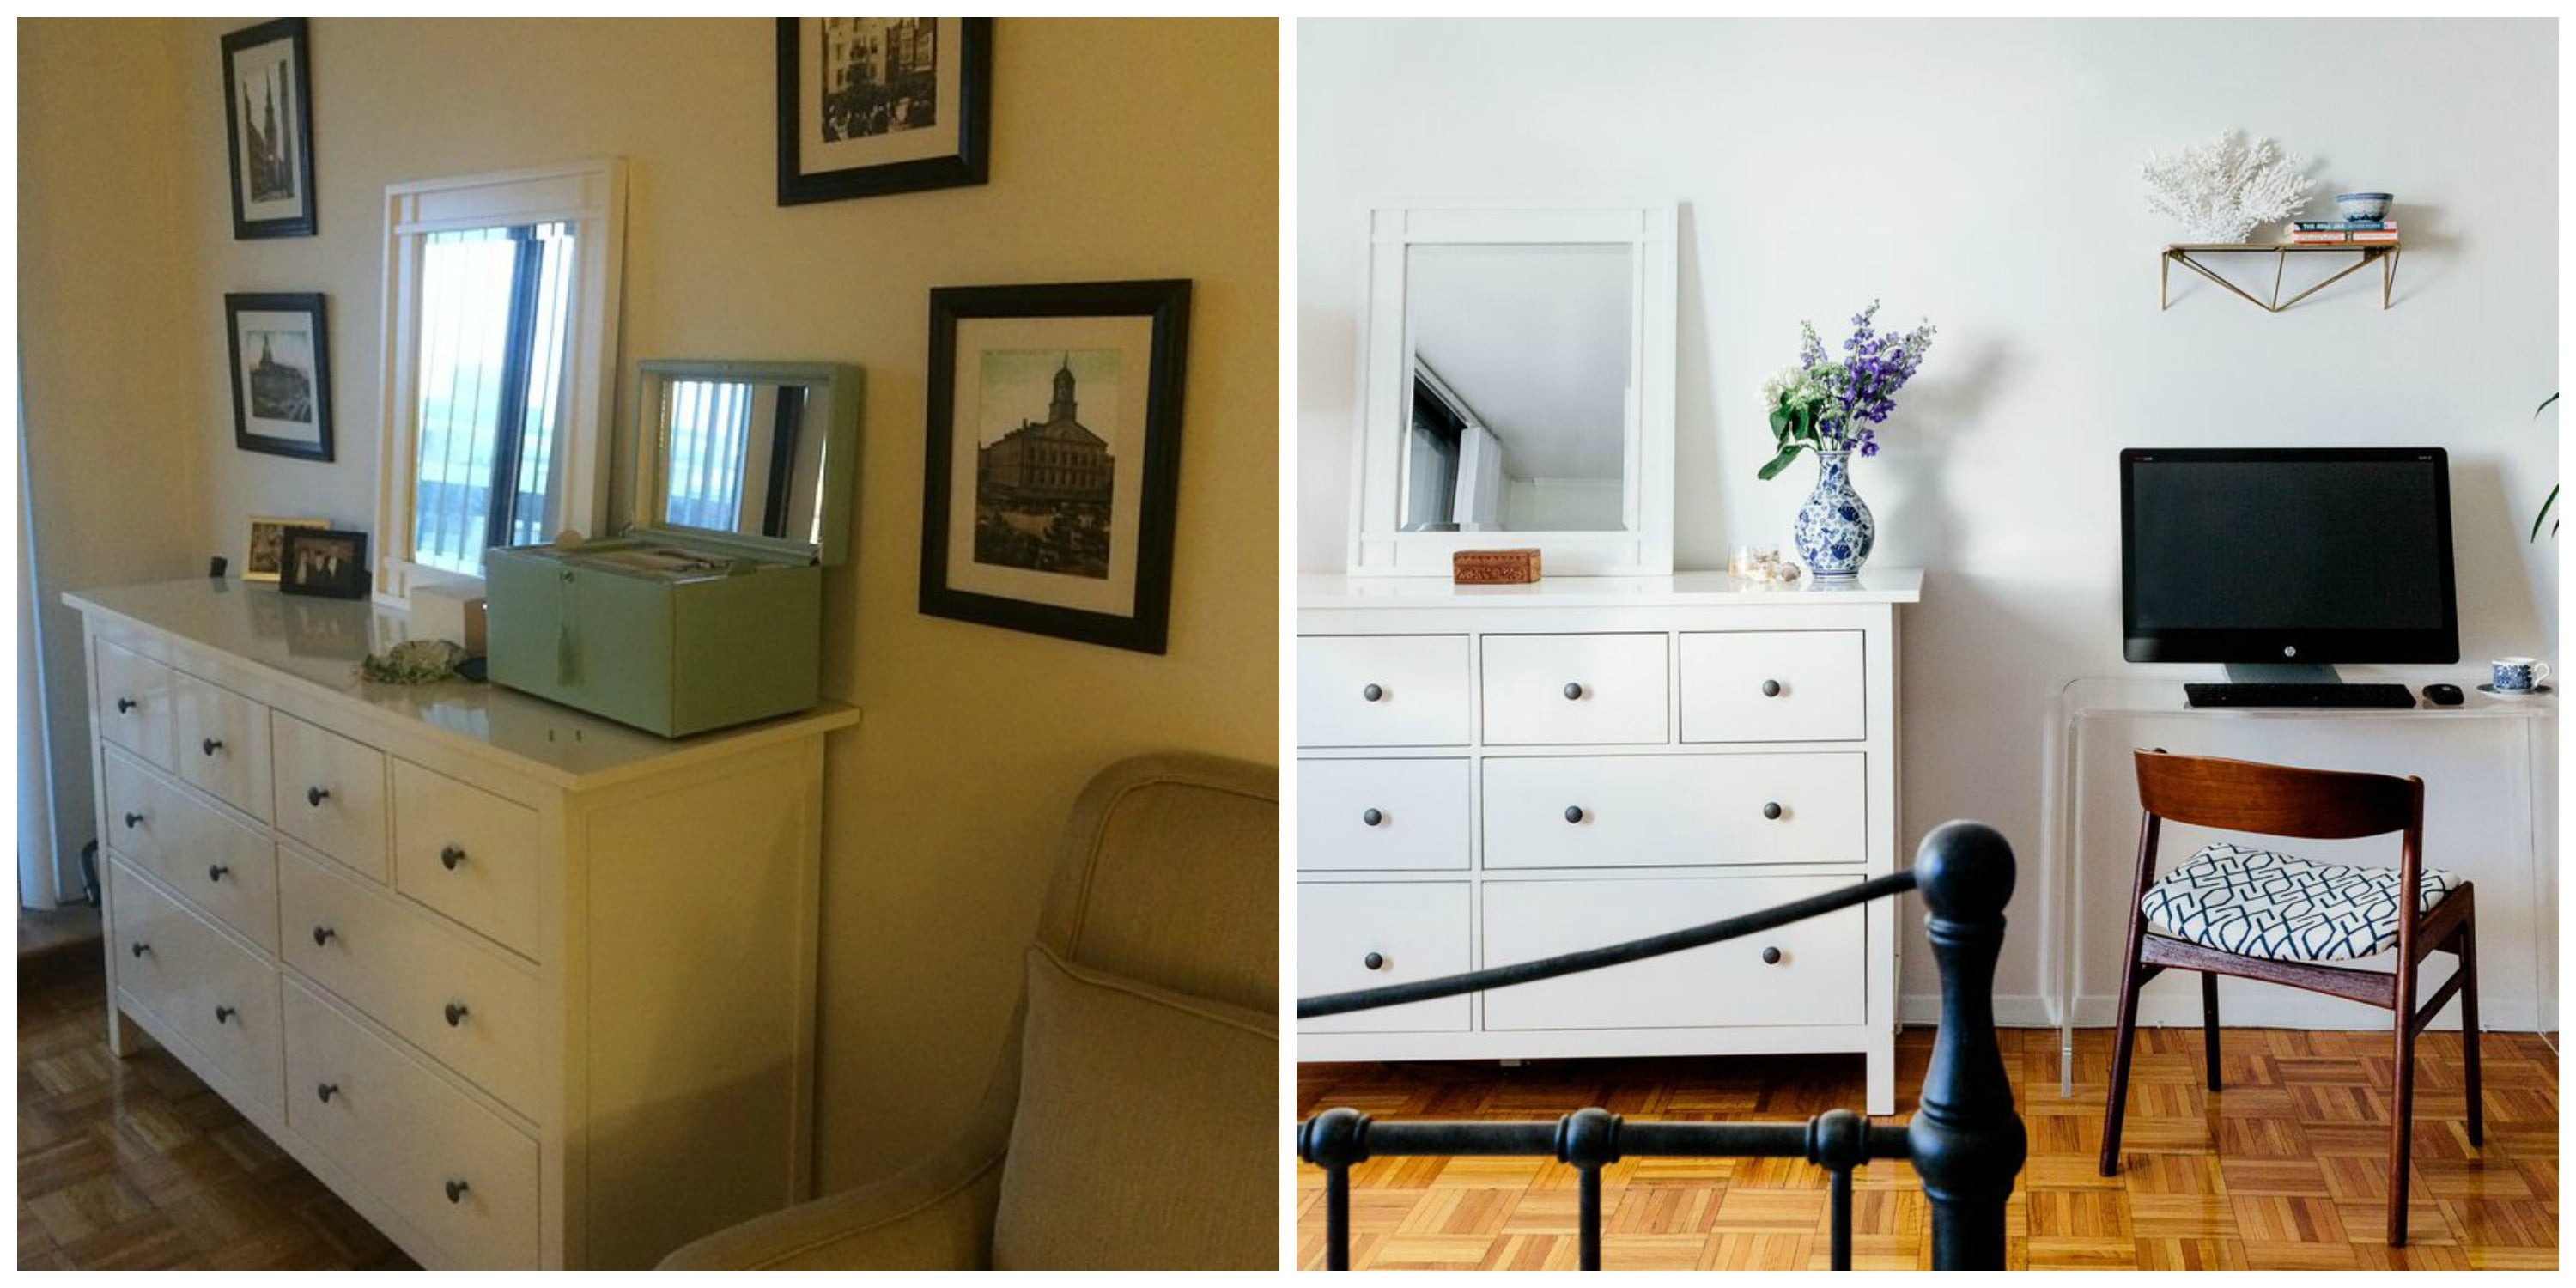 Sometimes, you don't need new everything. Here, the clients dresser stays the same but looks different in a newly-designed space.